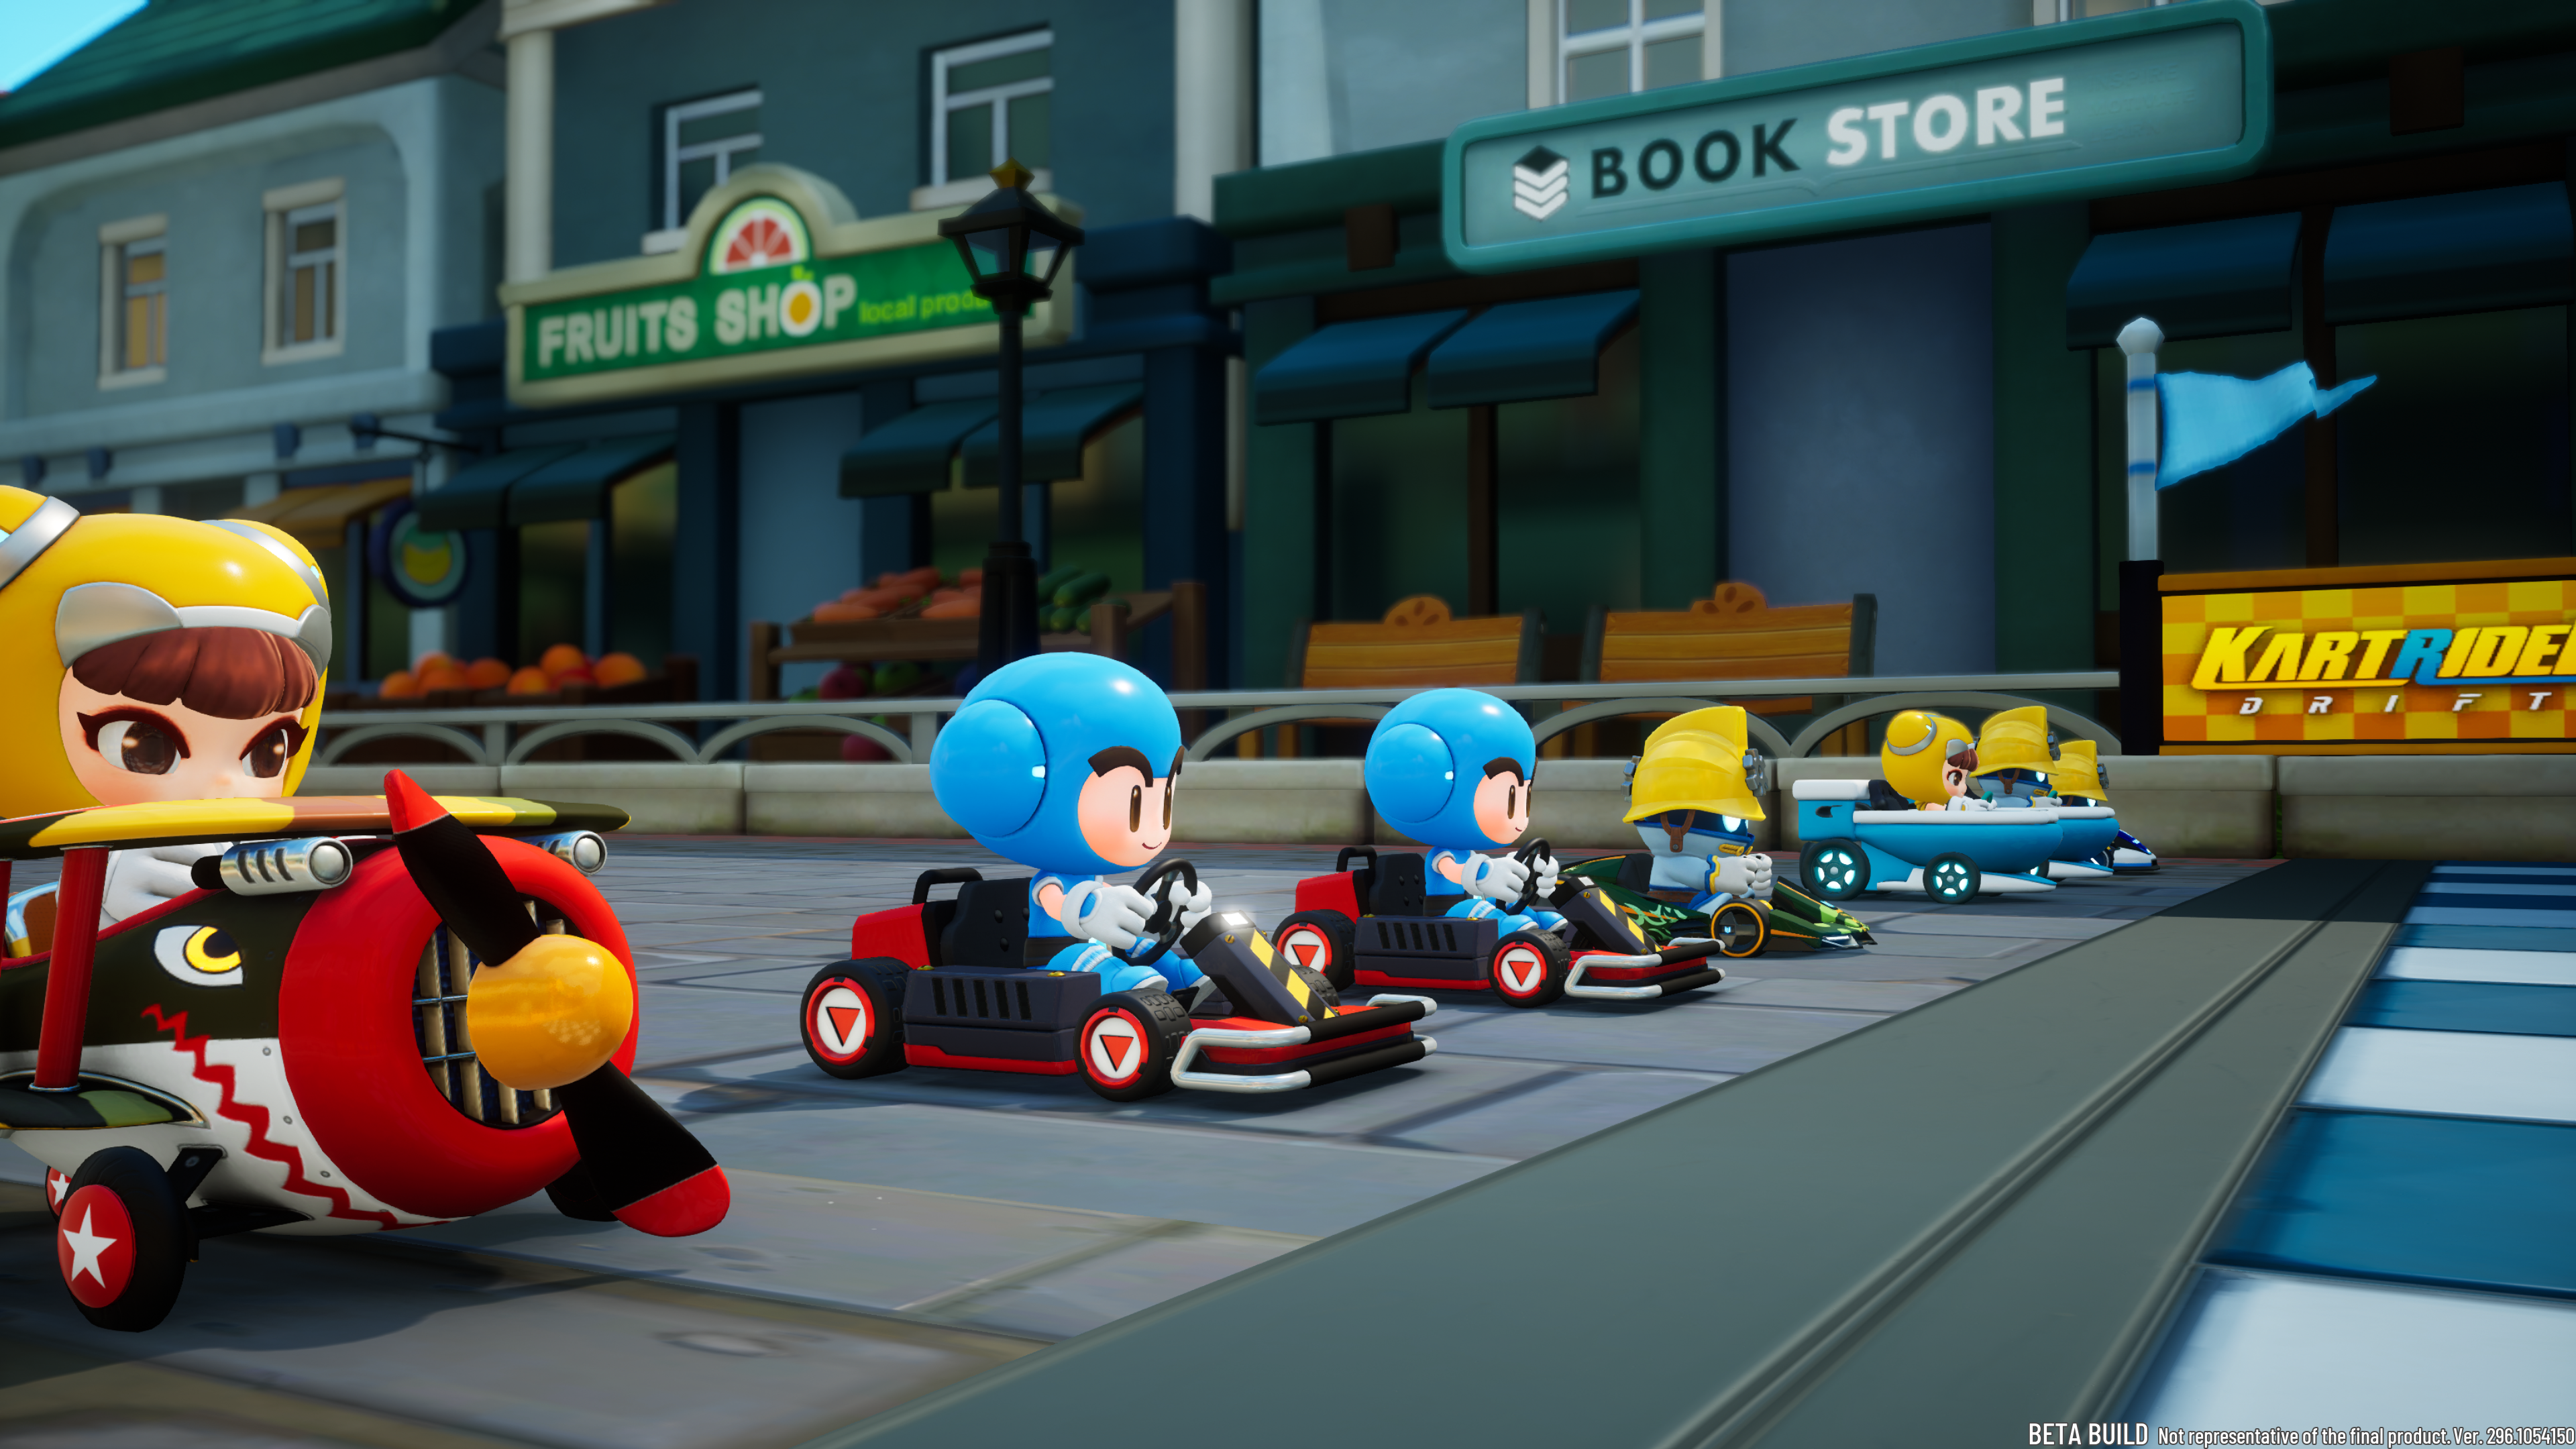 a number of karts line up for the race in KartRider: Drift